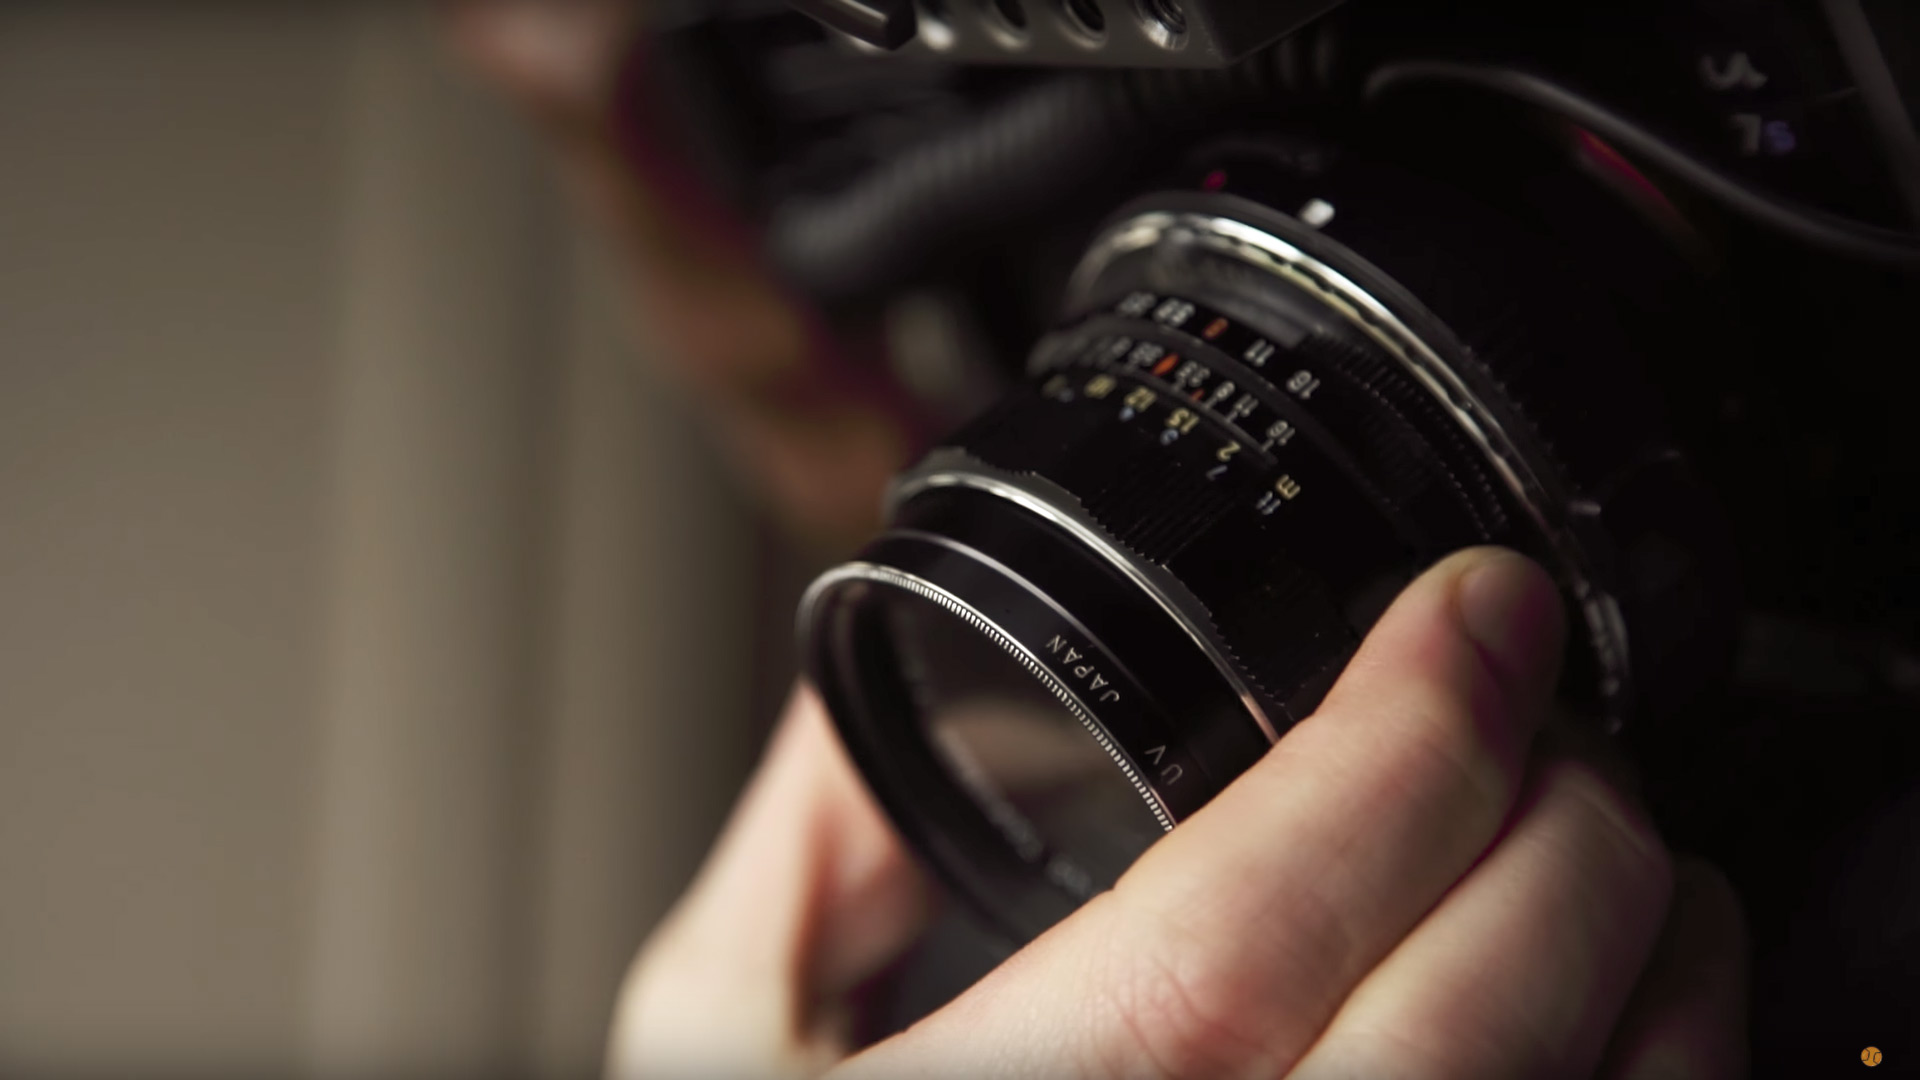 Takumar-35mm-lens-review.jpg